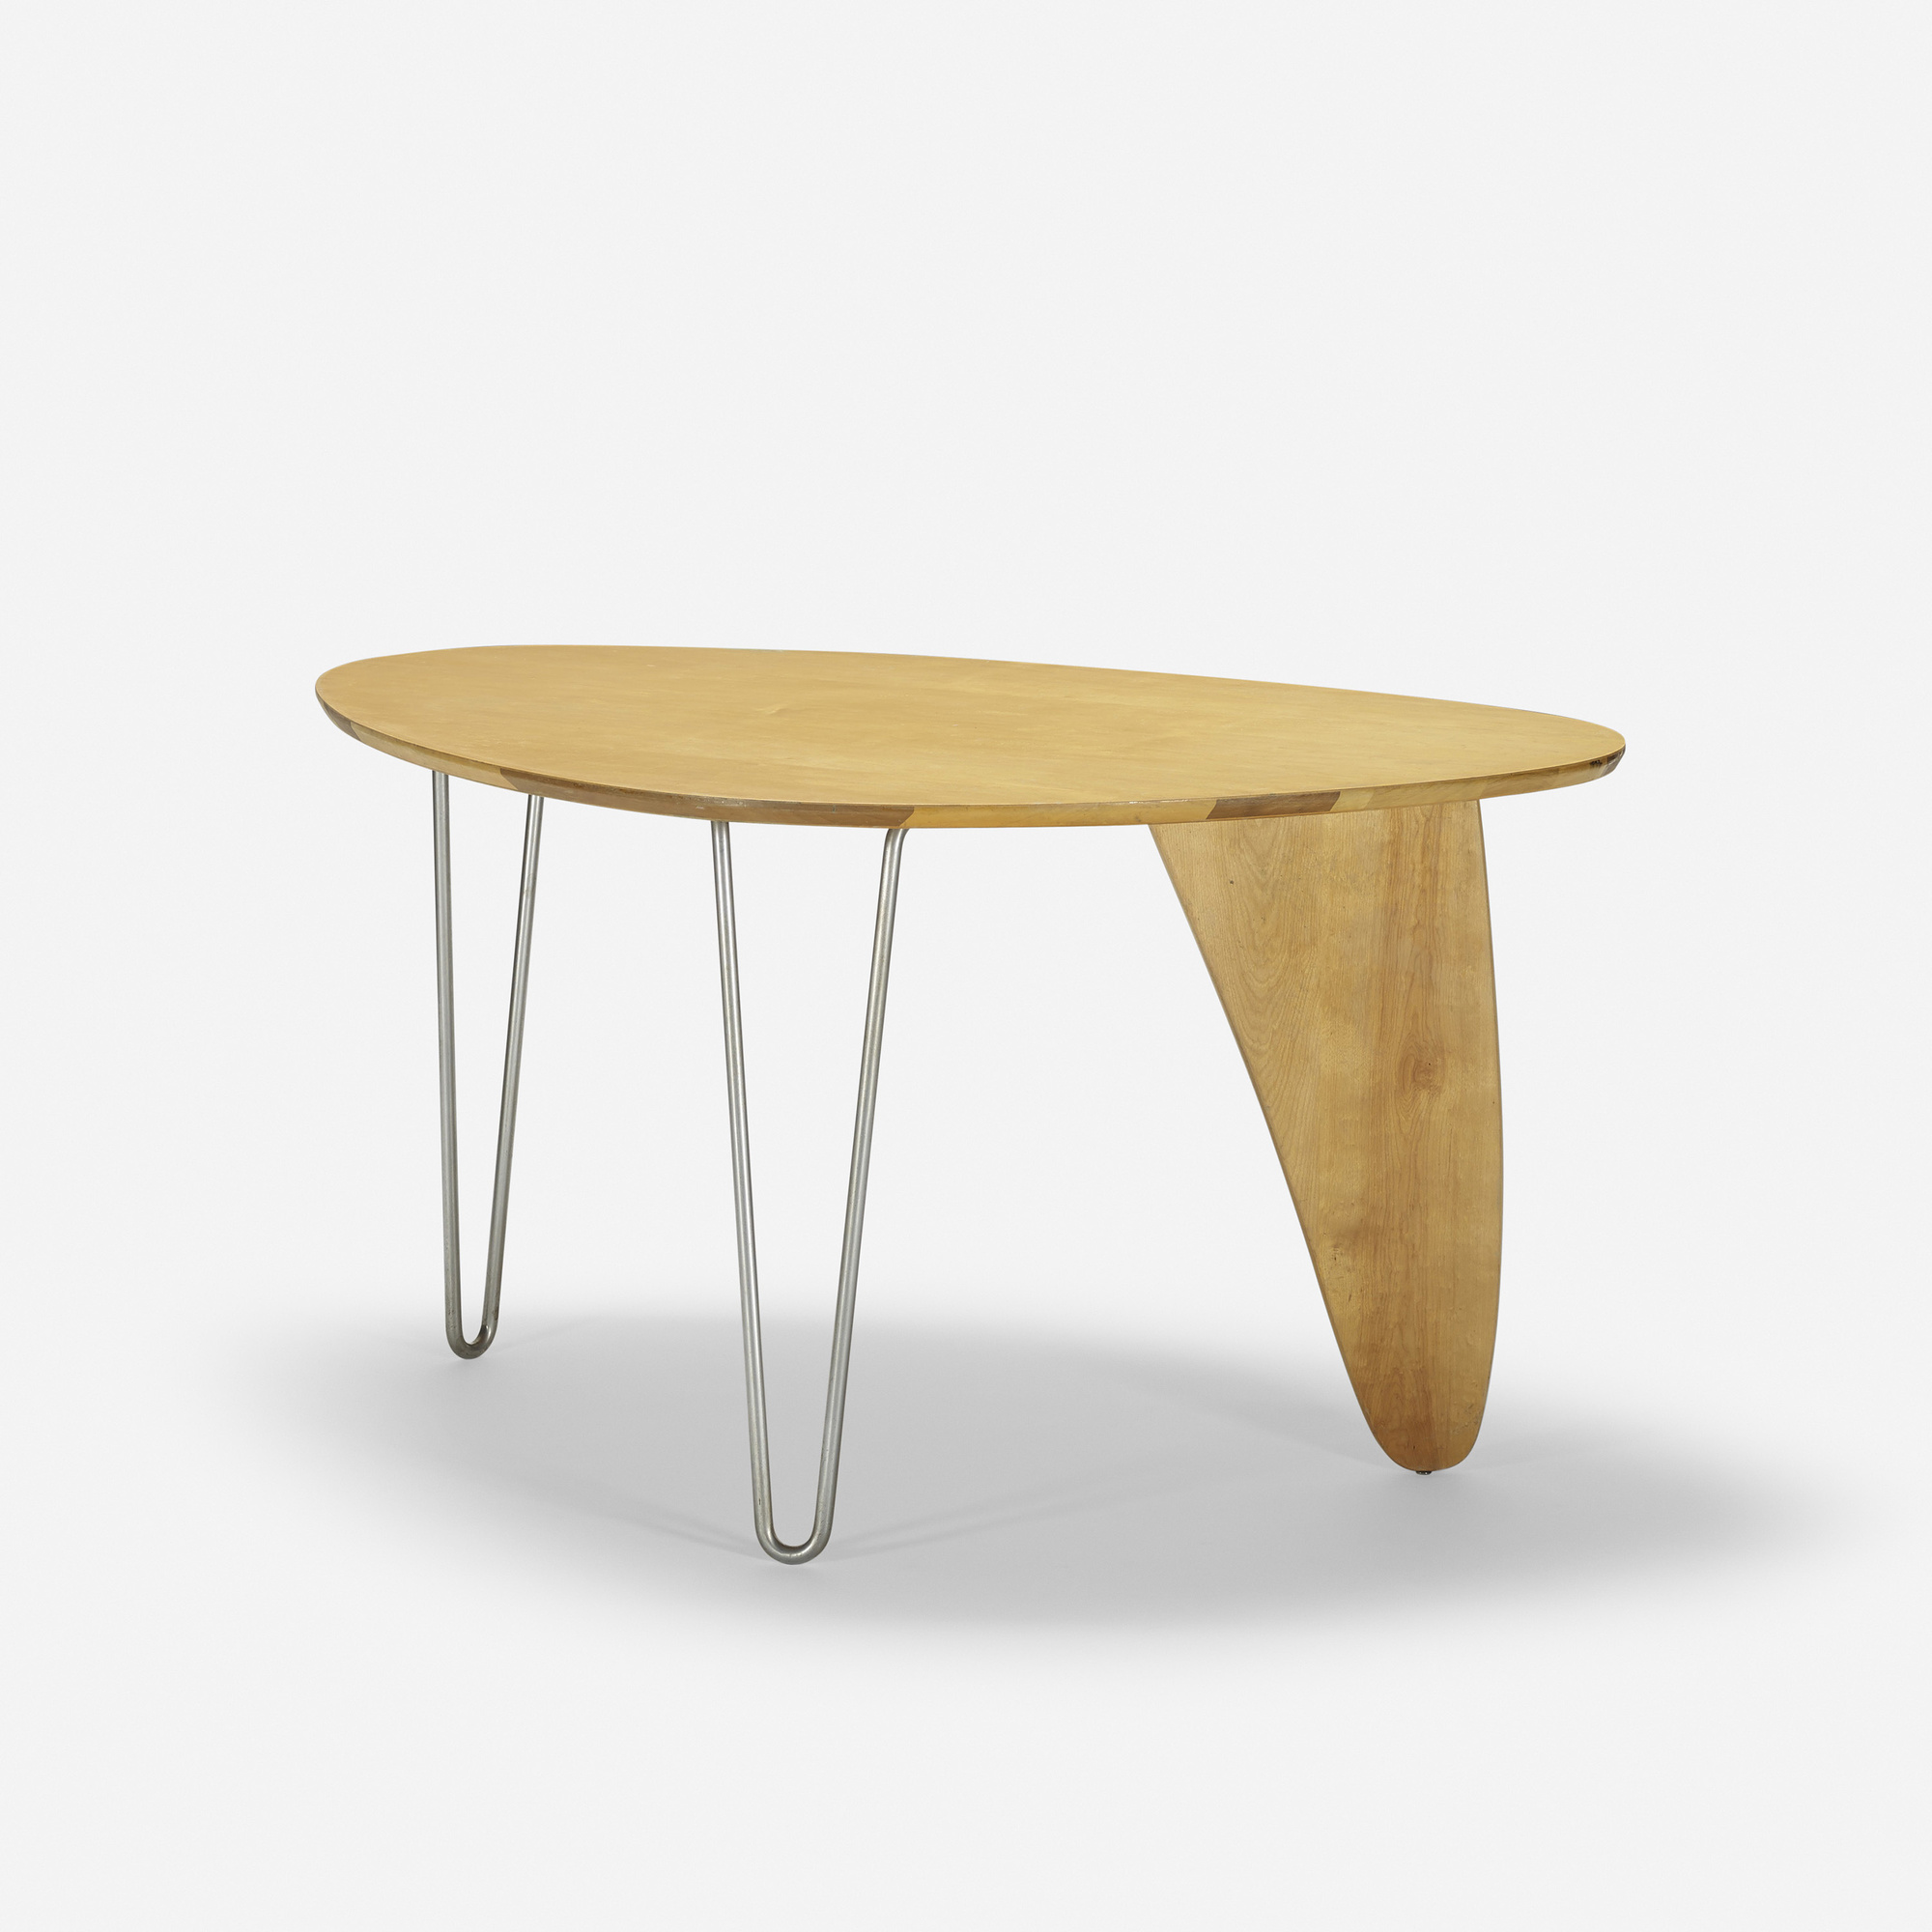 100 Coffee Table Isamu Noguchi Coffee Table By Isamu Noguchi In Bright Living Room